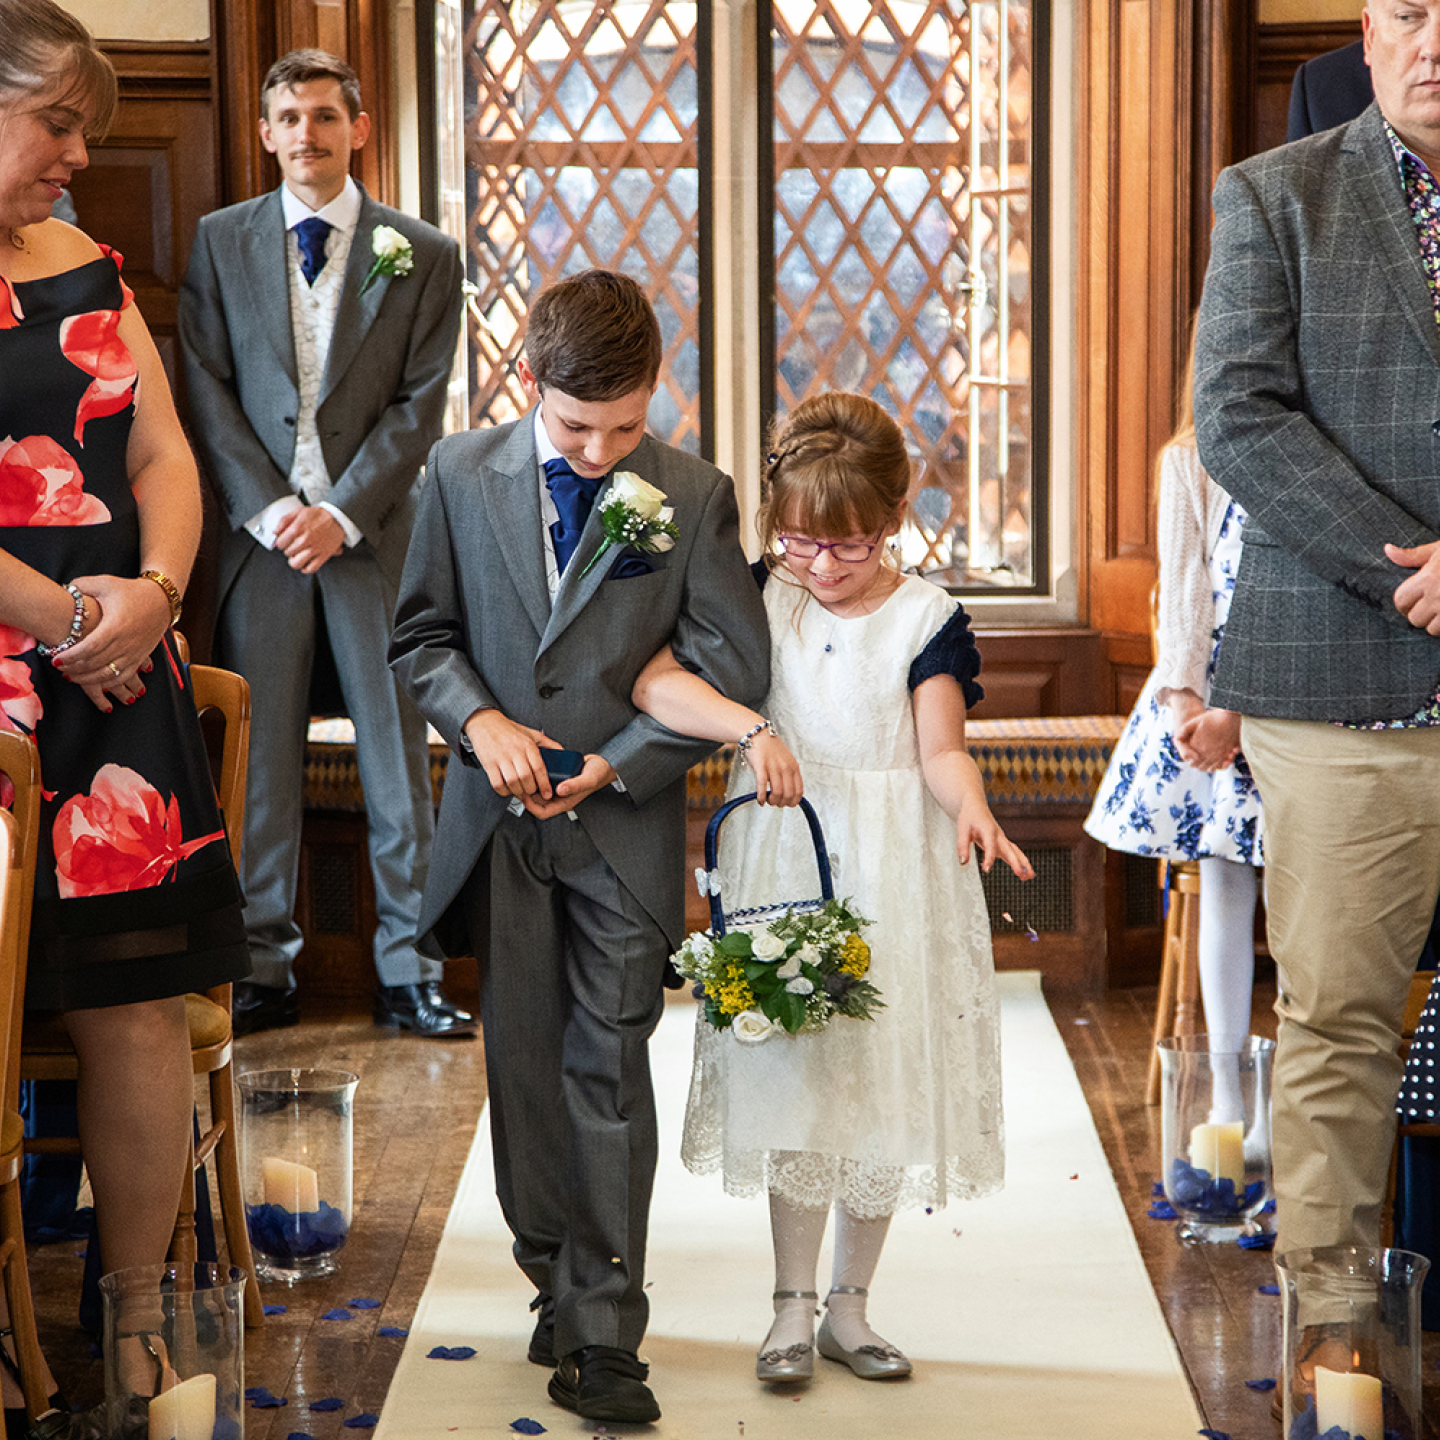 Page boy and flower girl ideas, civil partnership wedding, same sex marriage flower girl and page boy ideas